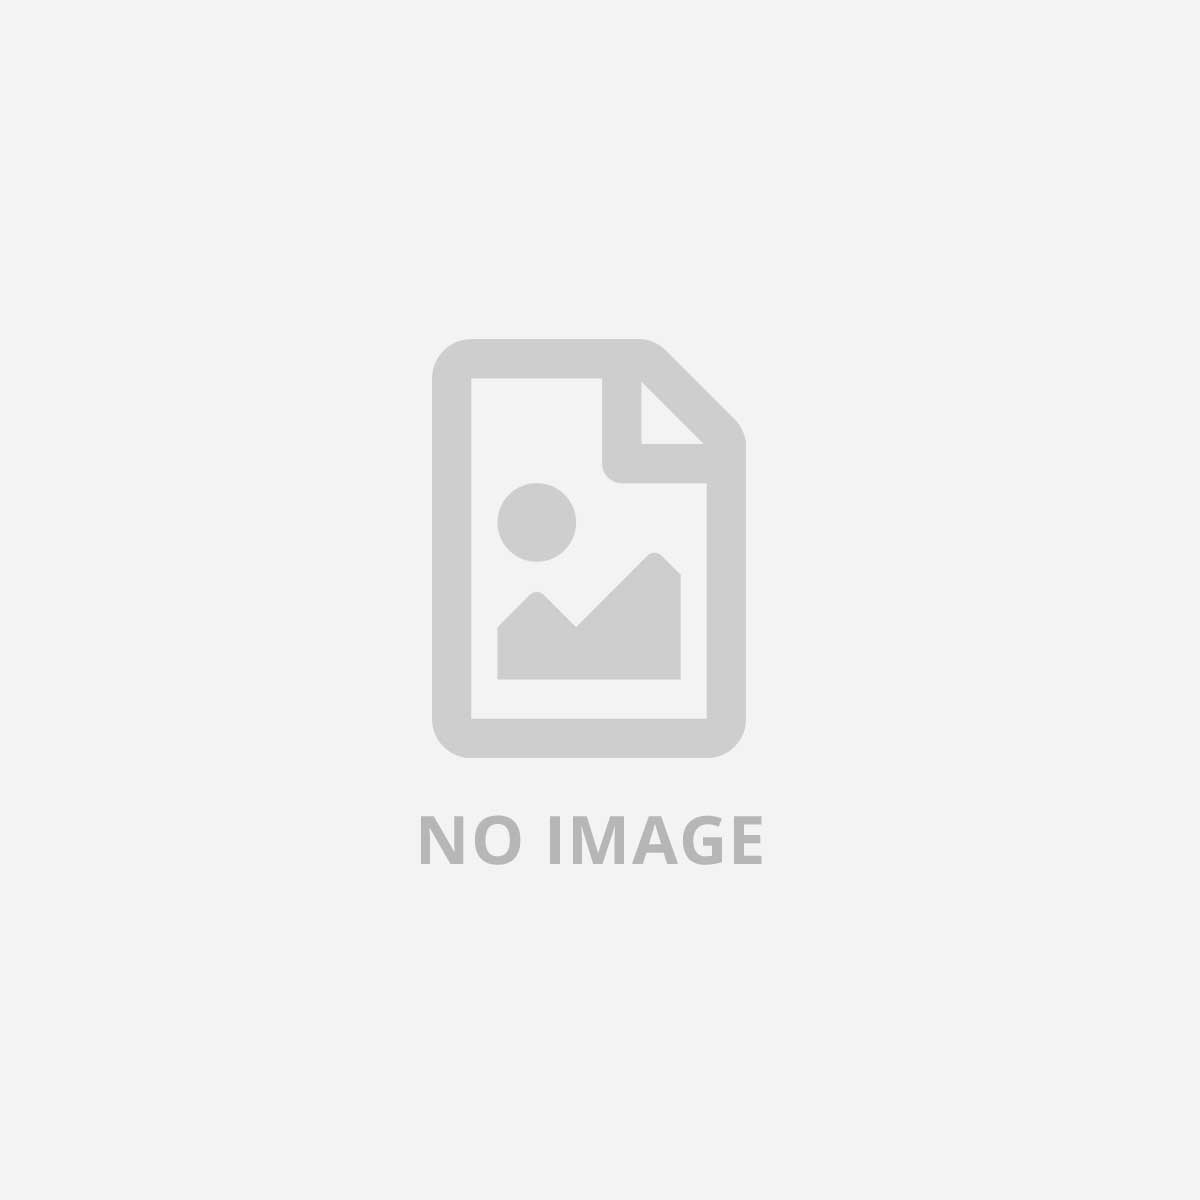 VERBATIM DVD-R 4.7GB 16X COLOR SLIM 5.PZ   S